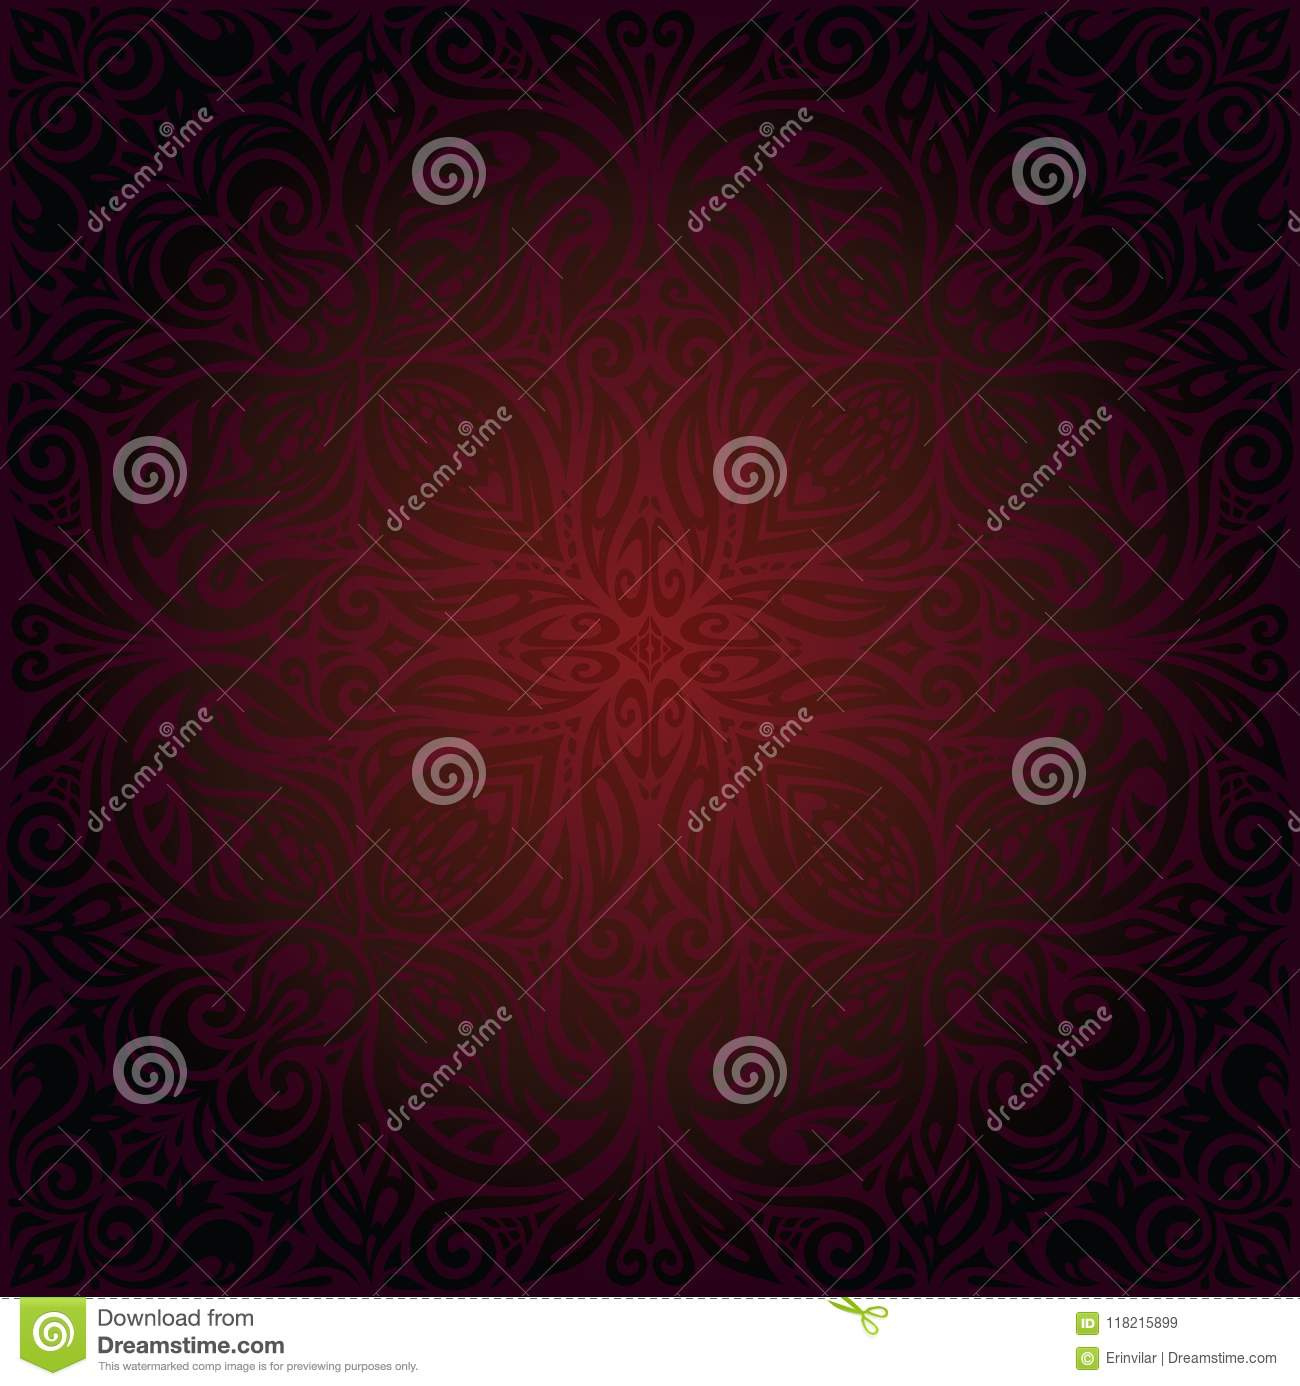 Dark Brown Red Mandala Wallpaper Vector Design Background In Trendy